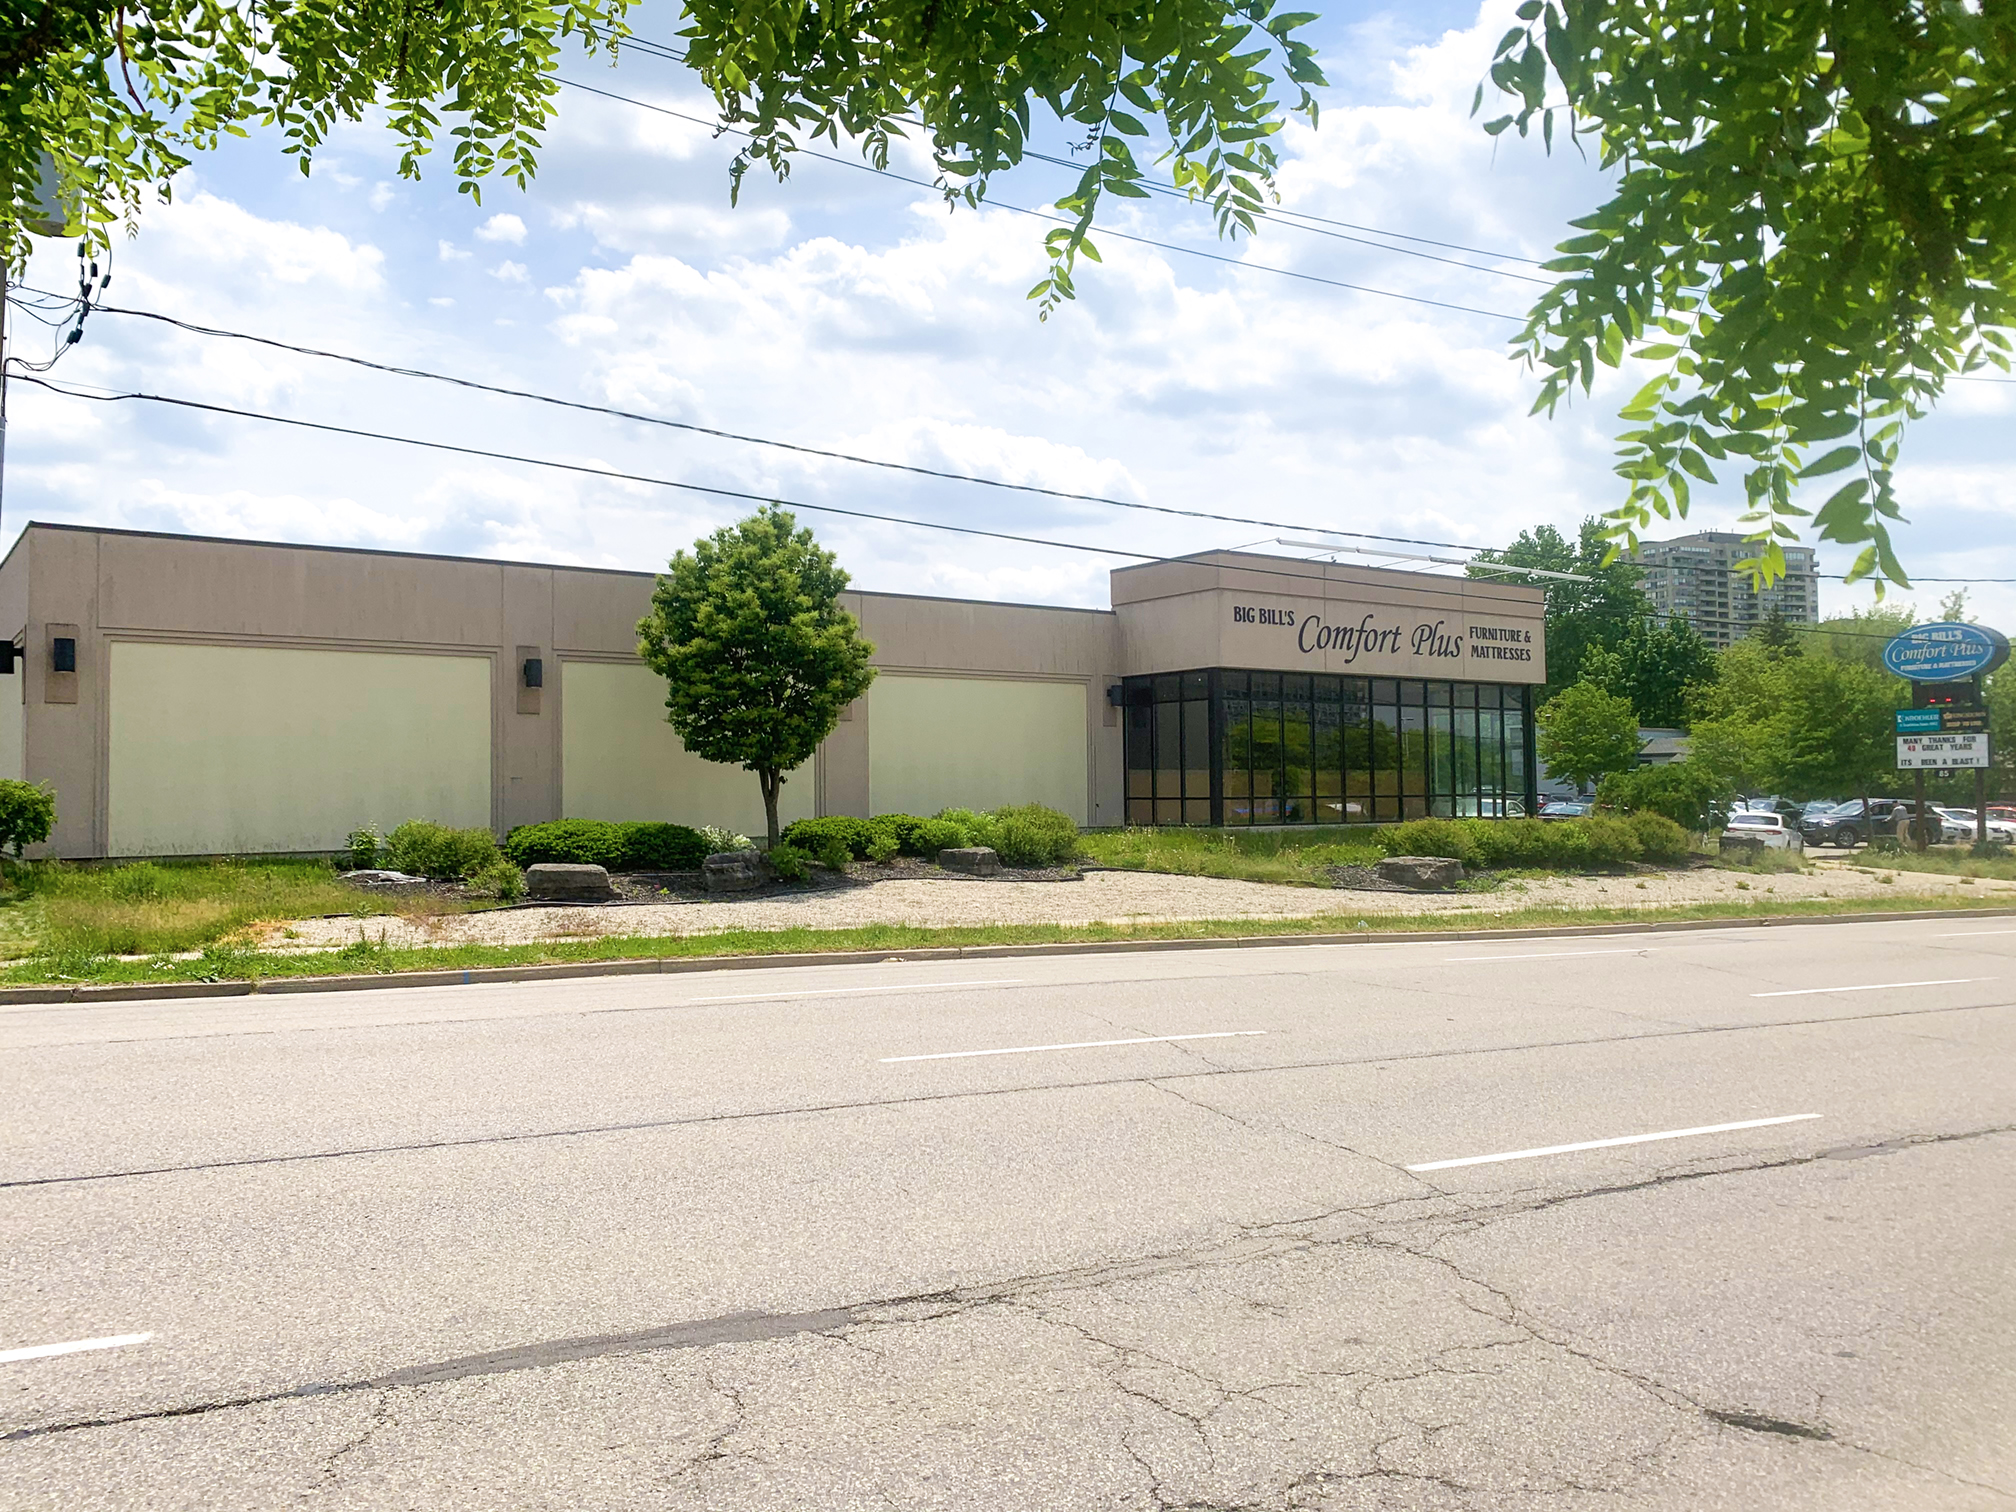 85 Bridgeport Road E, Waterloo | Retail/Warehouse space for Lease